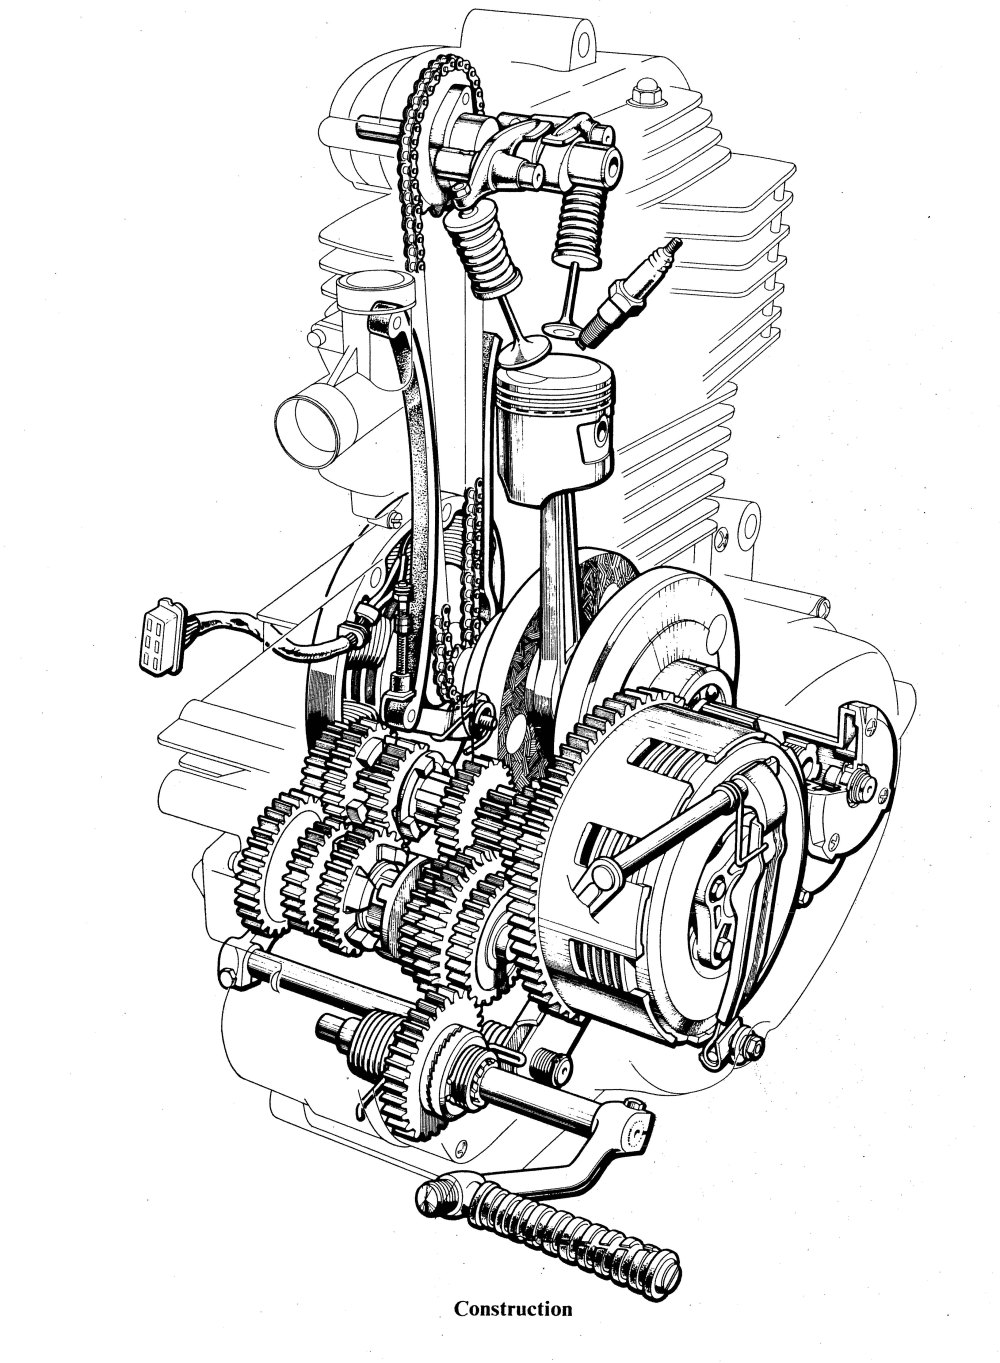 medium resolution of perbedaan honda cb dengan honda cg kataku honda xr 200 2002 honda xr200 engine diagram